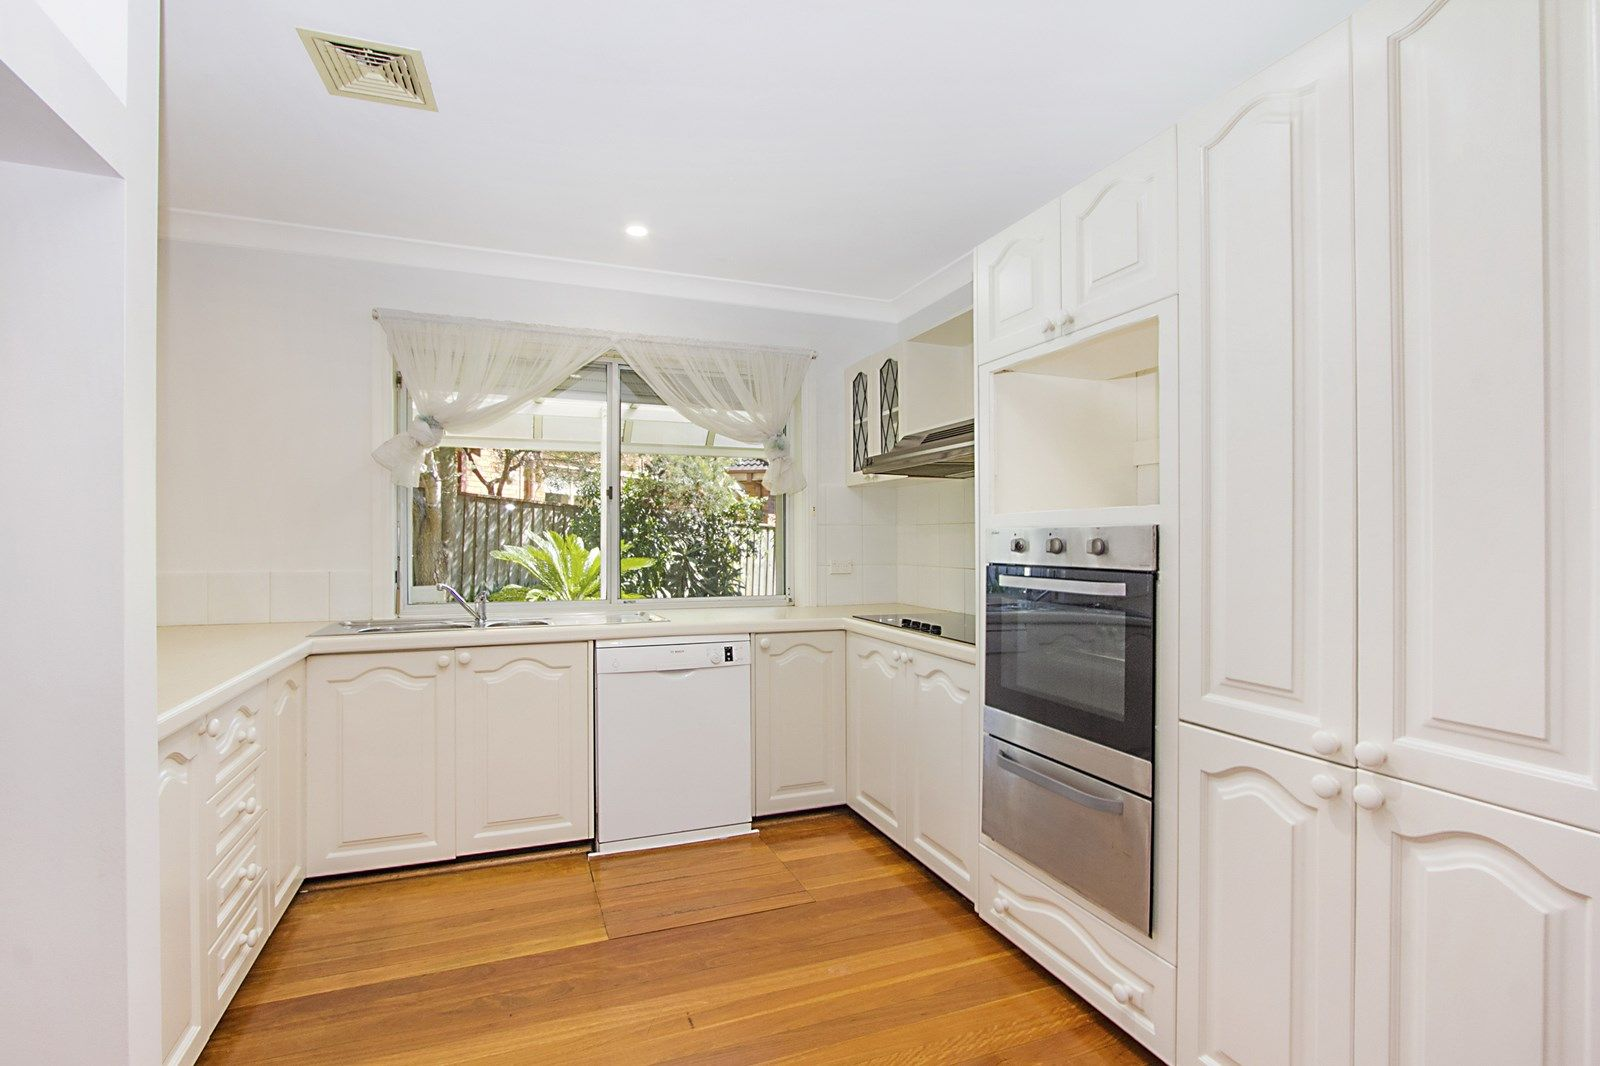 3 Darlington Drive, Cherrybrook NSW 2126, Image 2